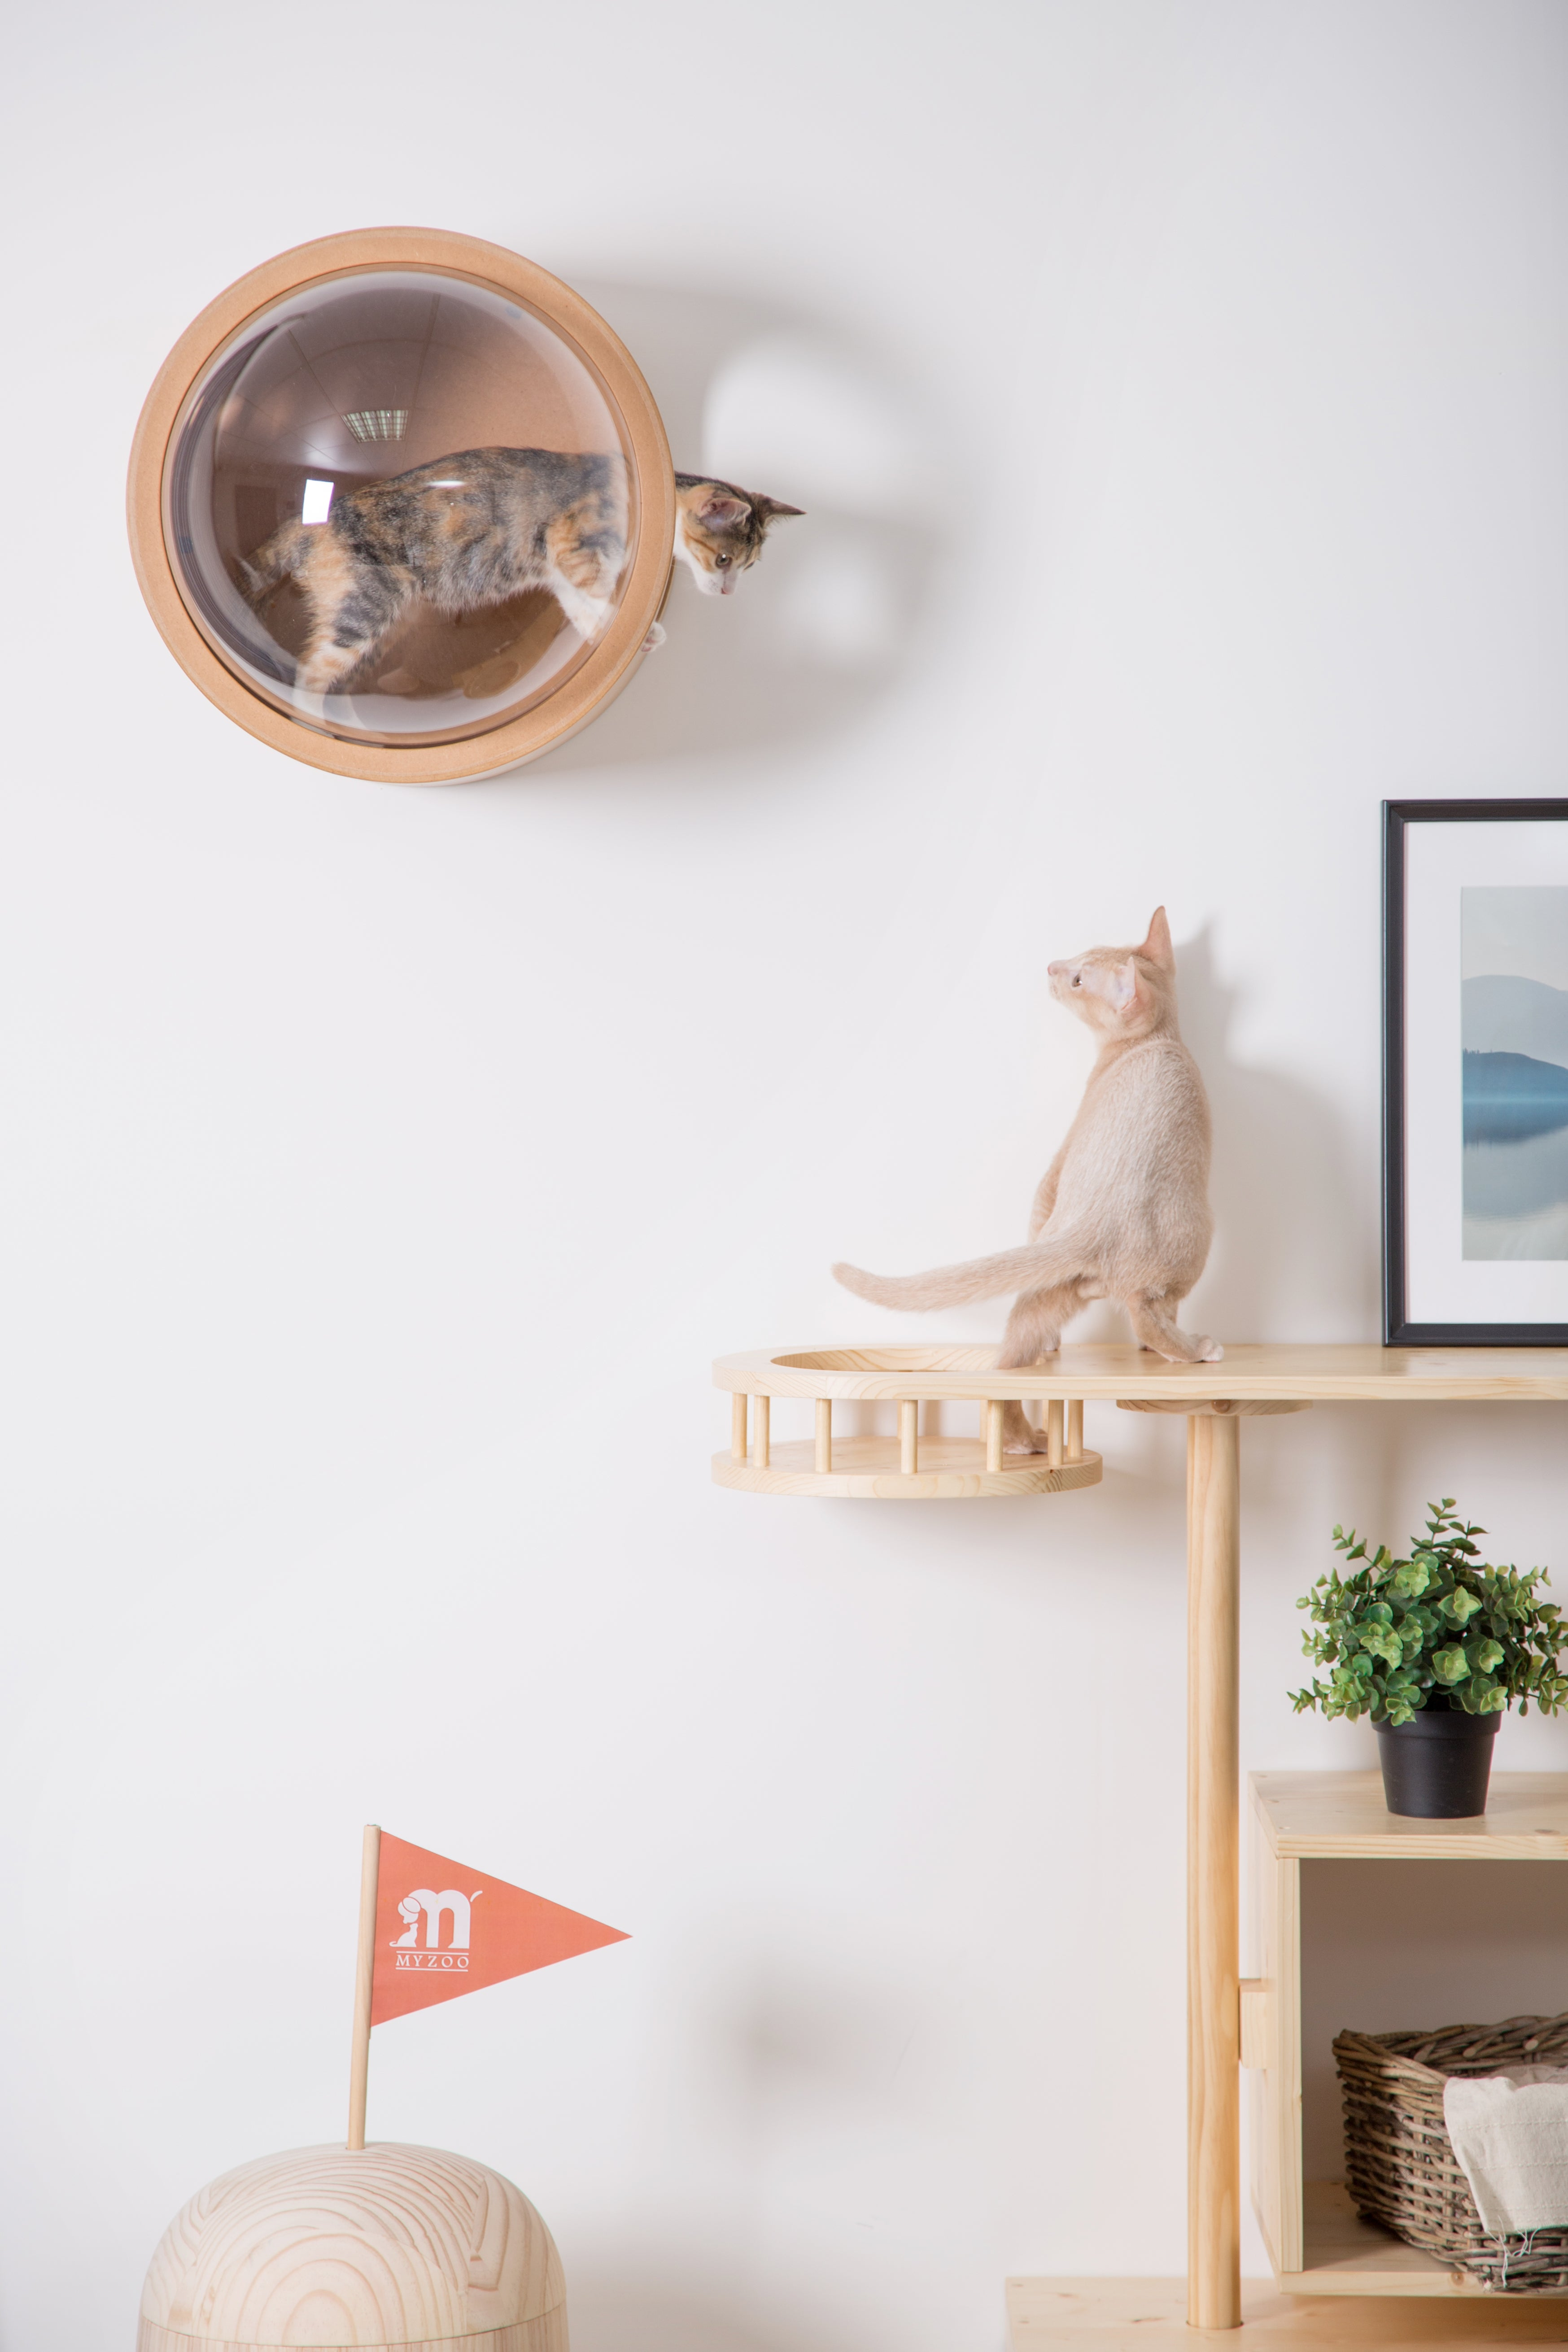 Felines can get so well with the floating cat furniture and have fun with them.